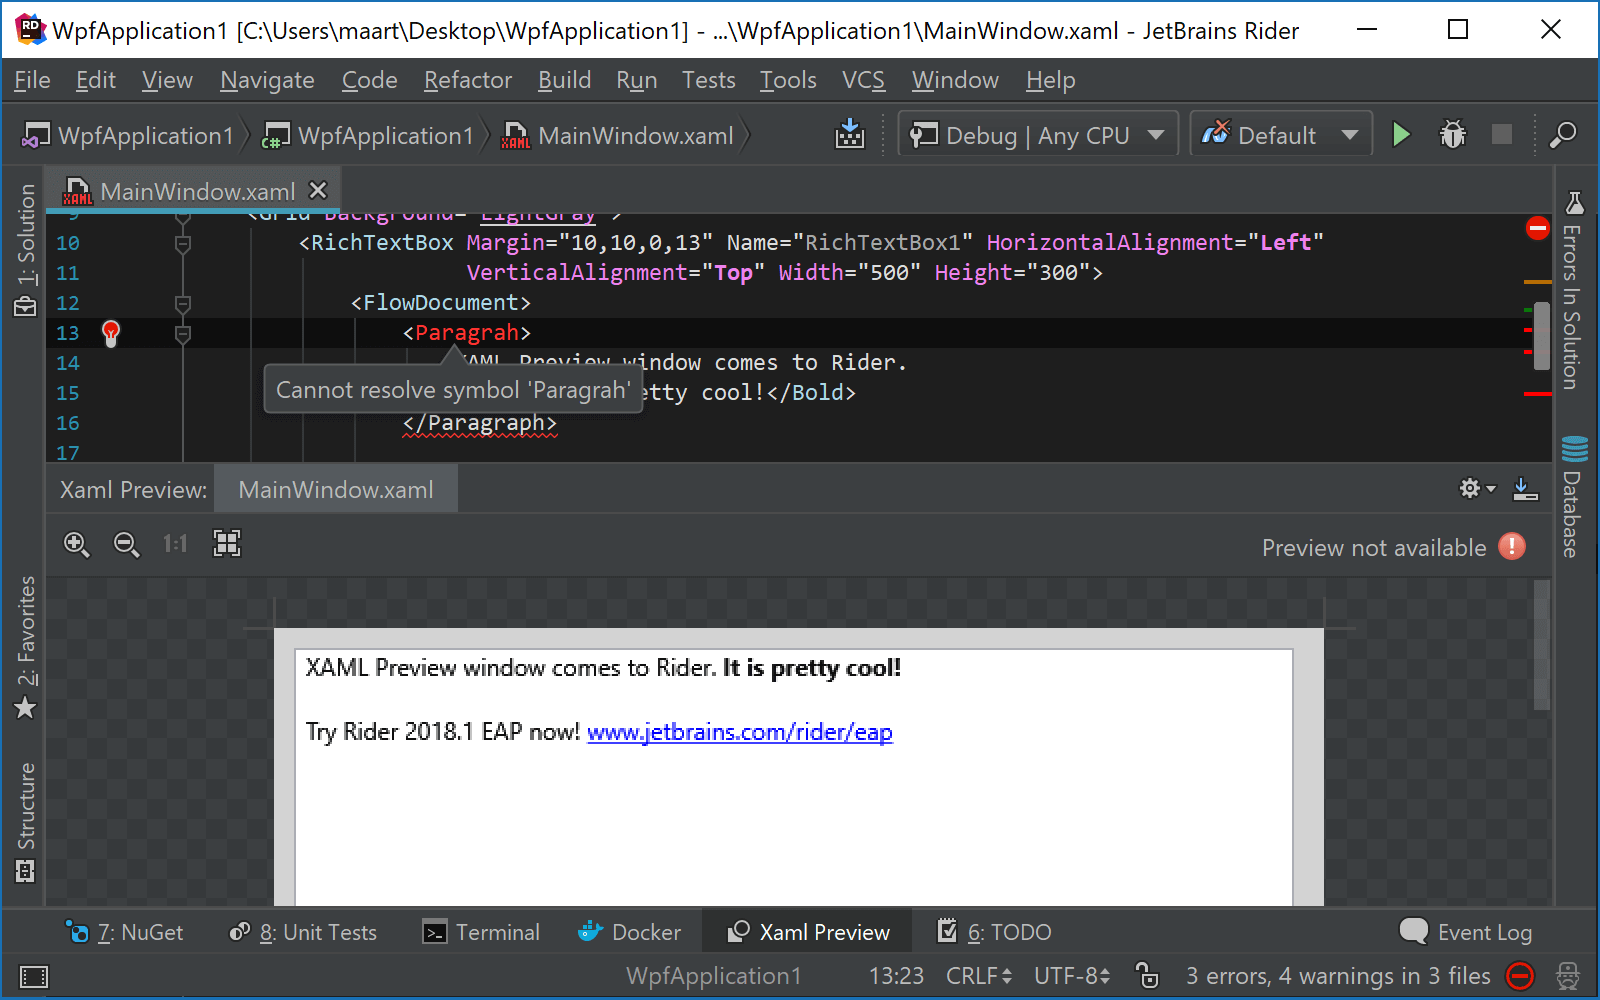 Errors in XAML markup are highlighted